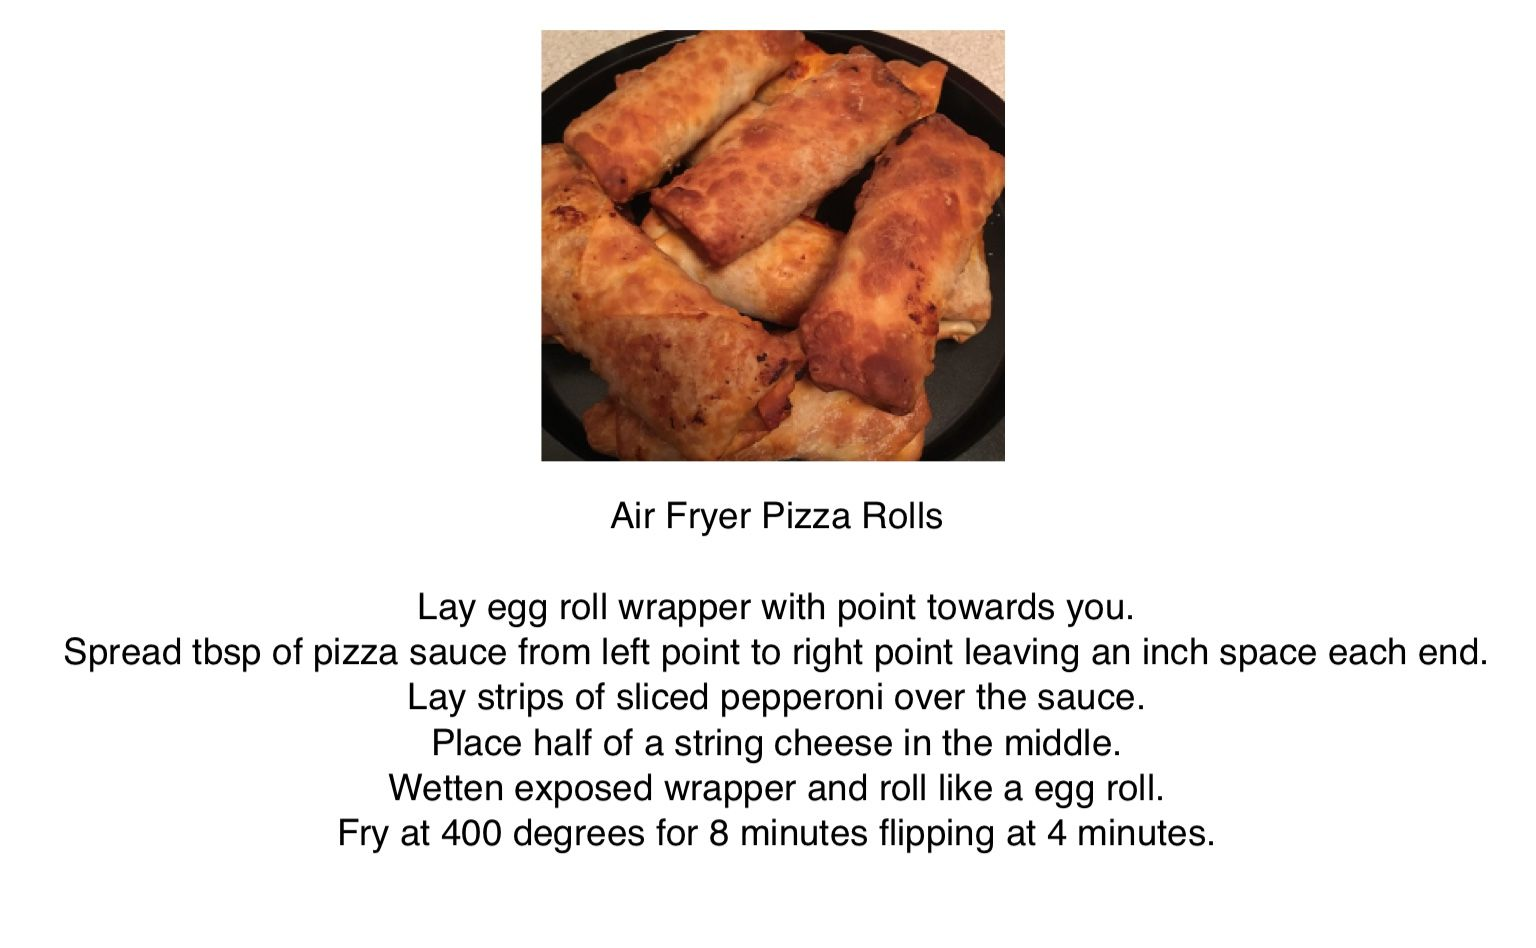 Pin by Barry Keippel on Air Fryer (With images